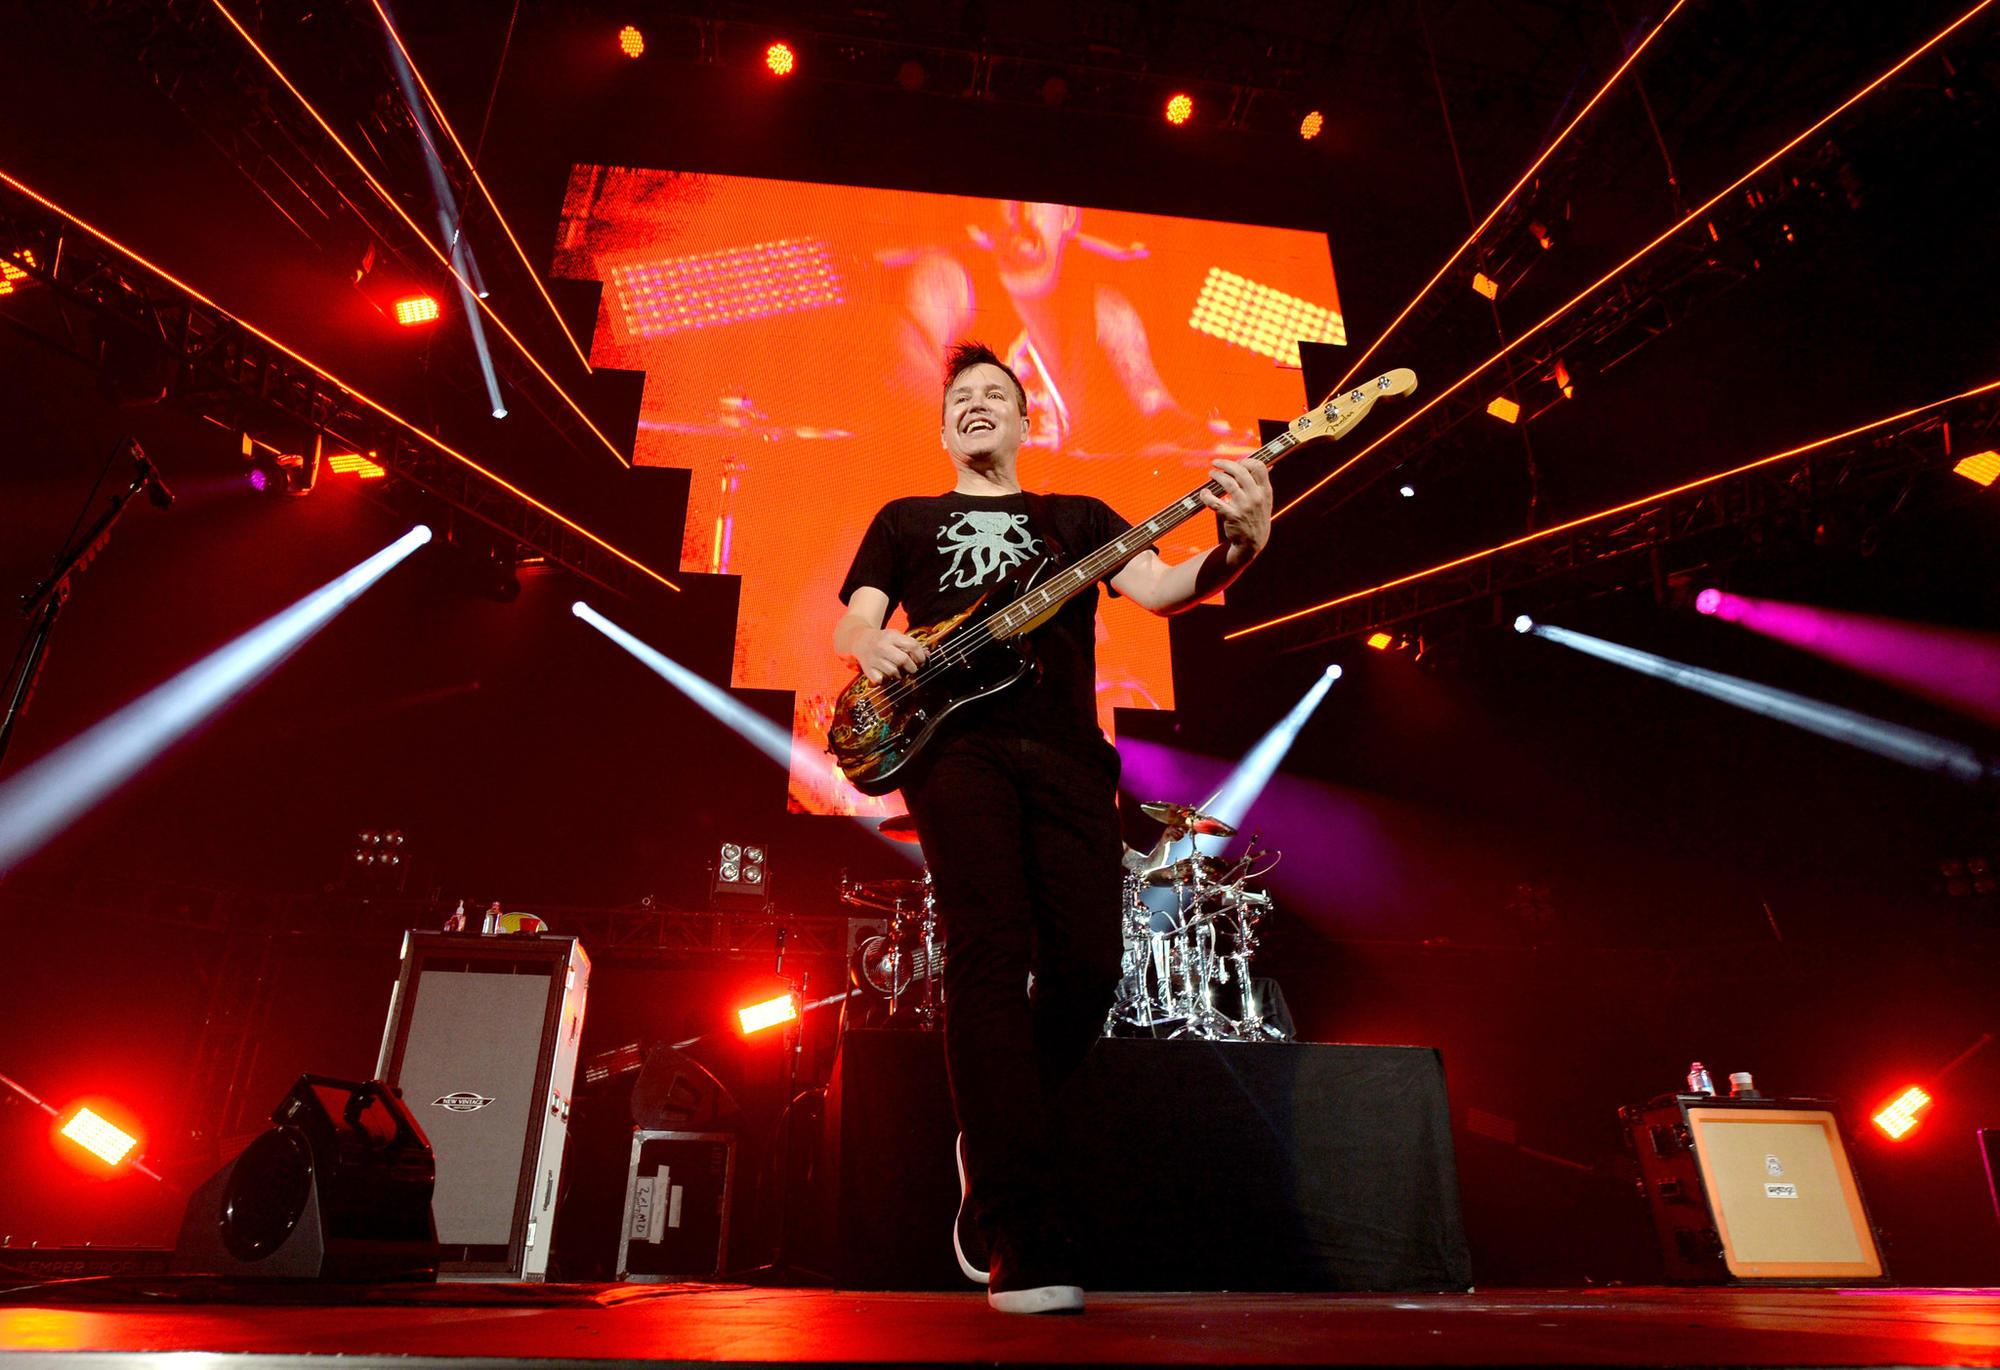 Mark Hoppus of Blink-182 performs at the 2016 KROQ Weenie Roast on May 14.